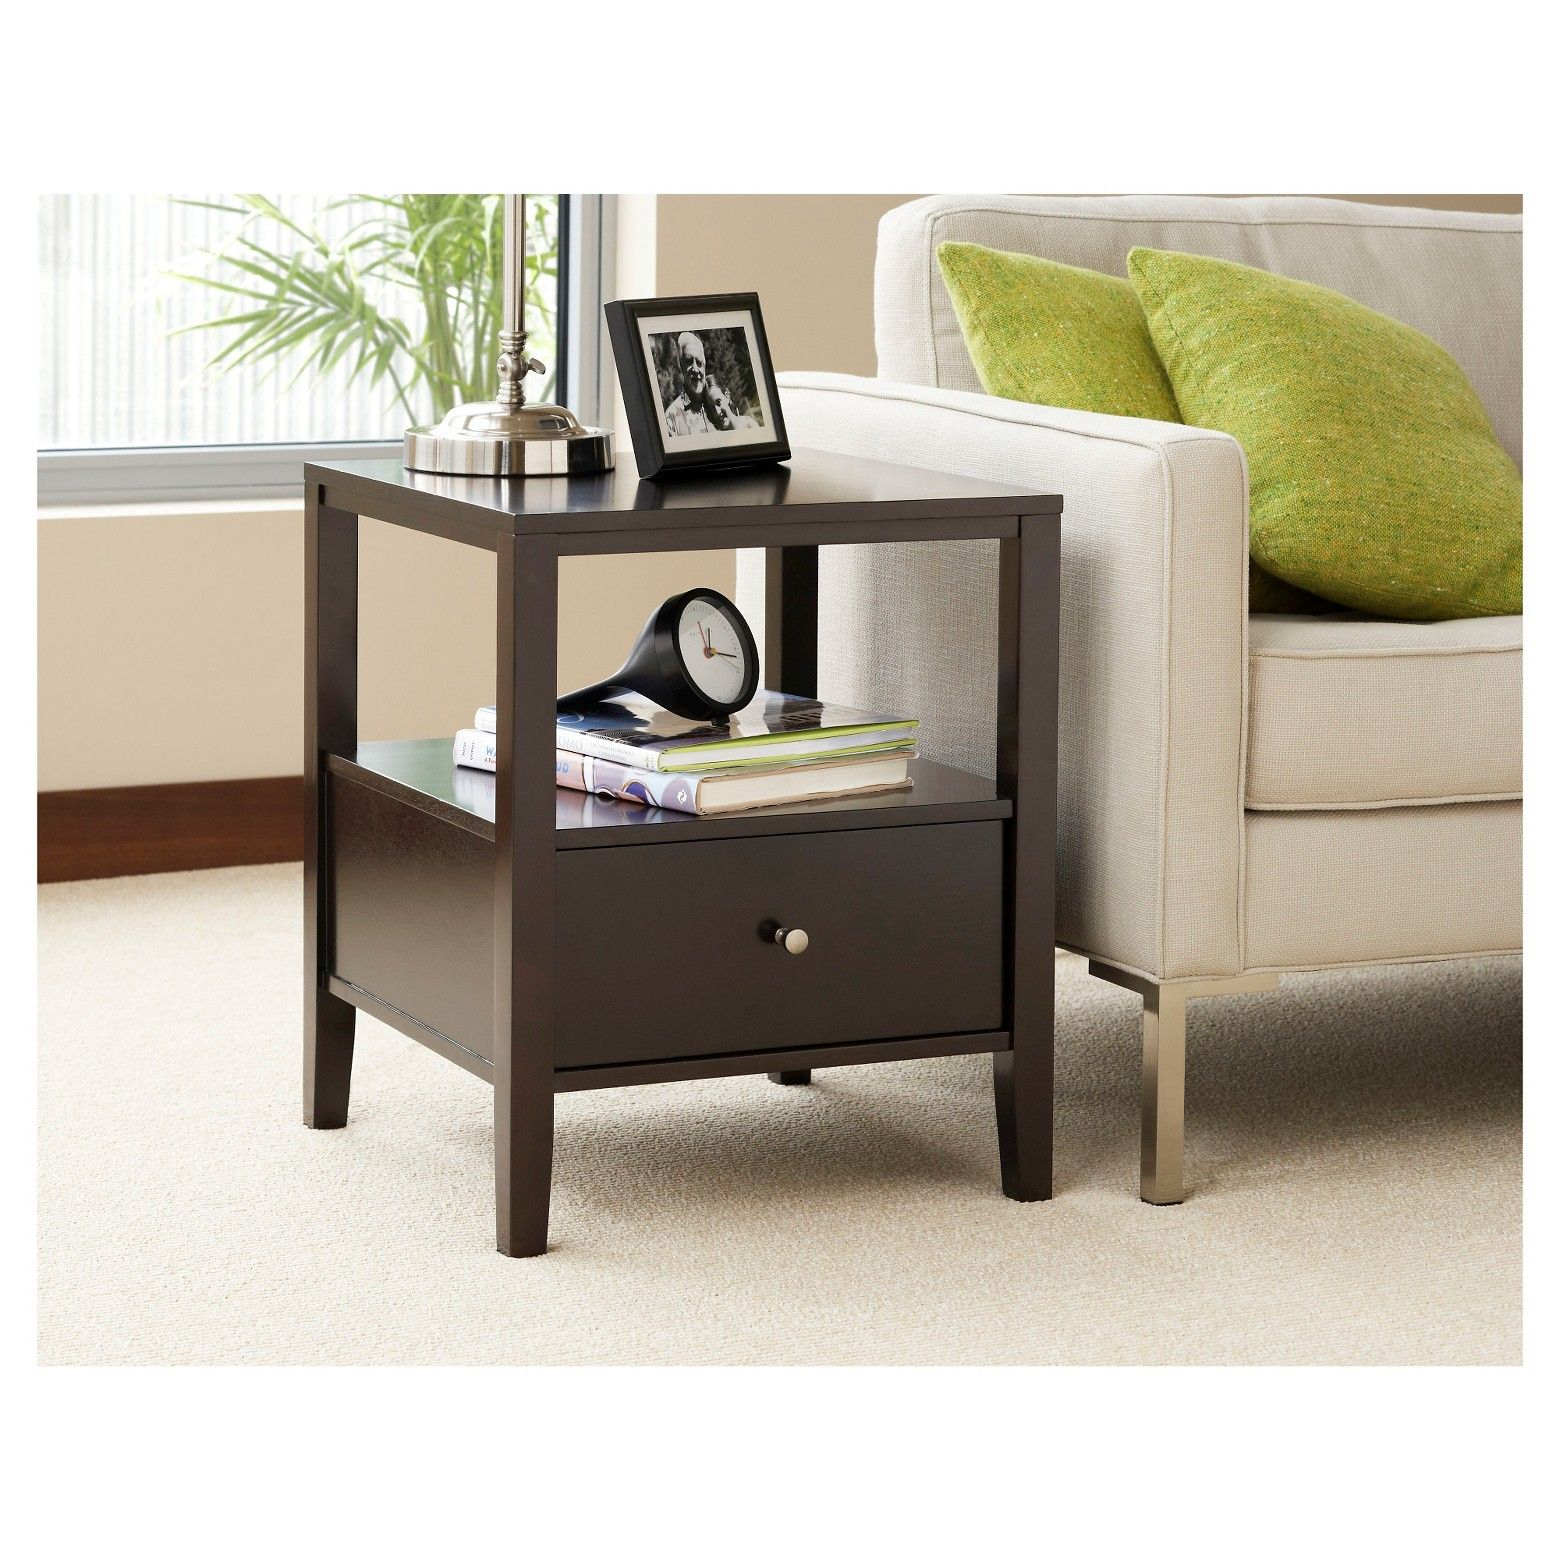 end tables side table